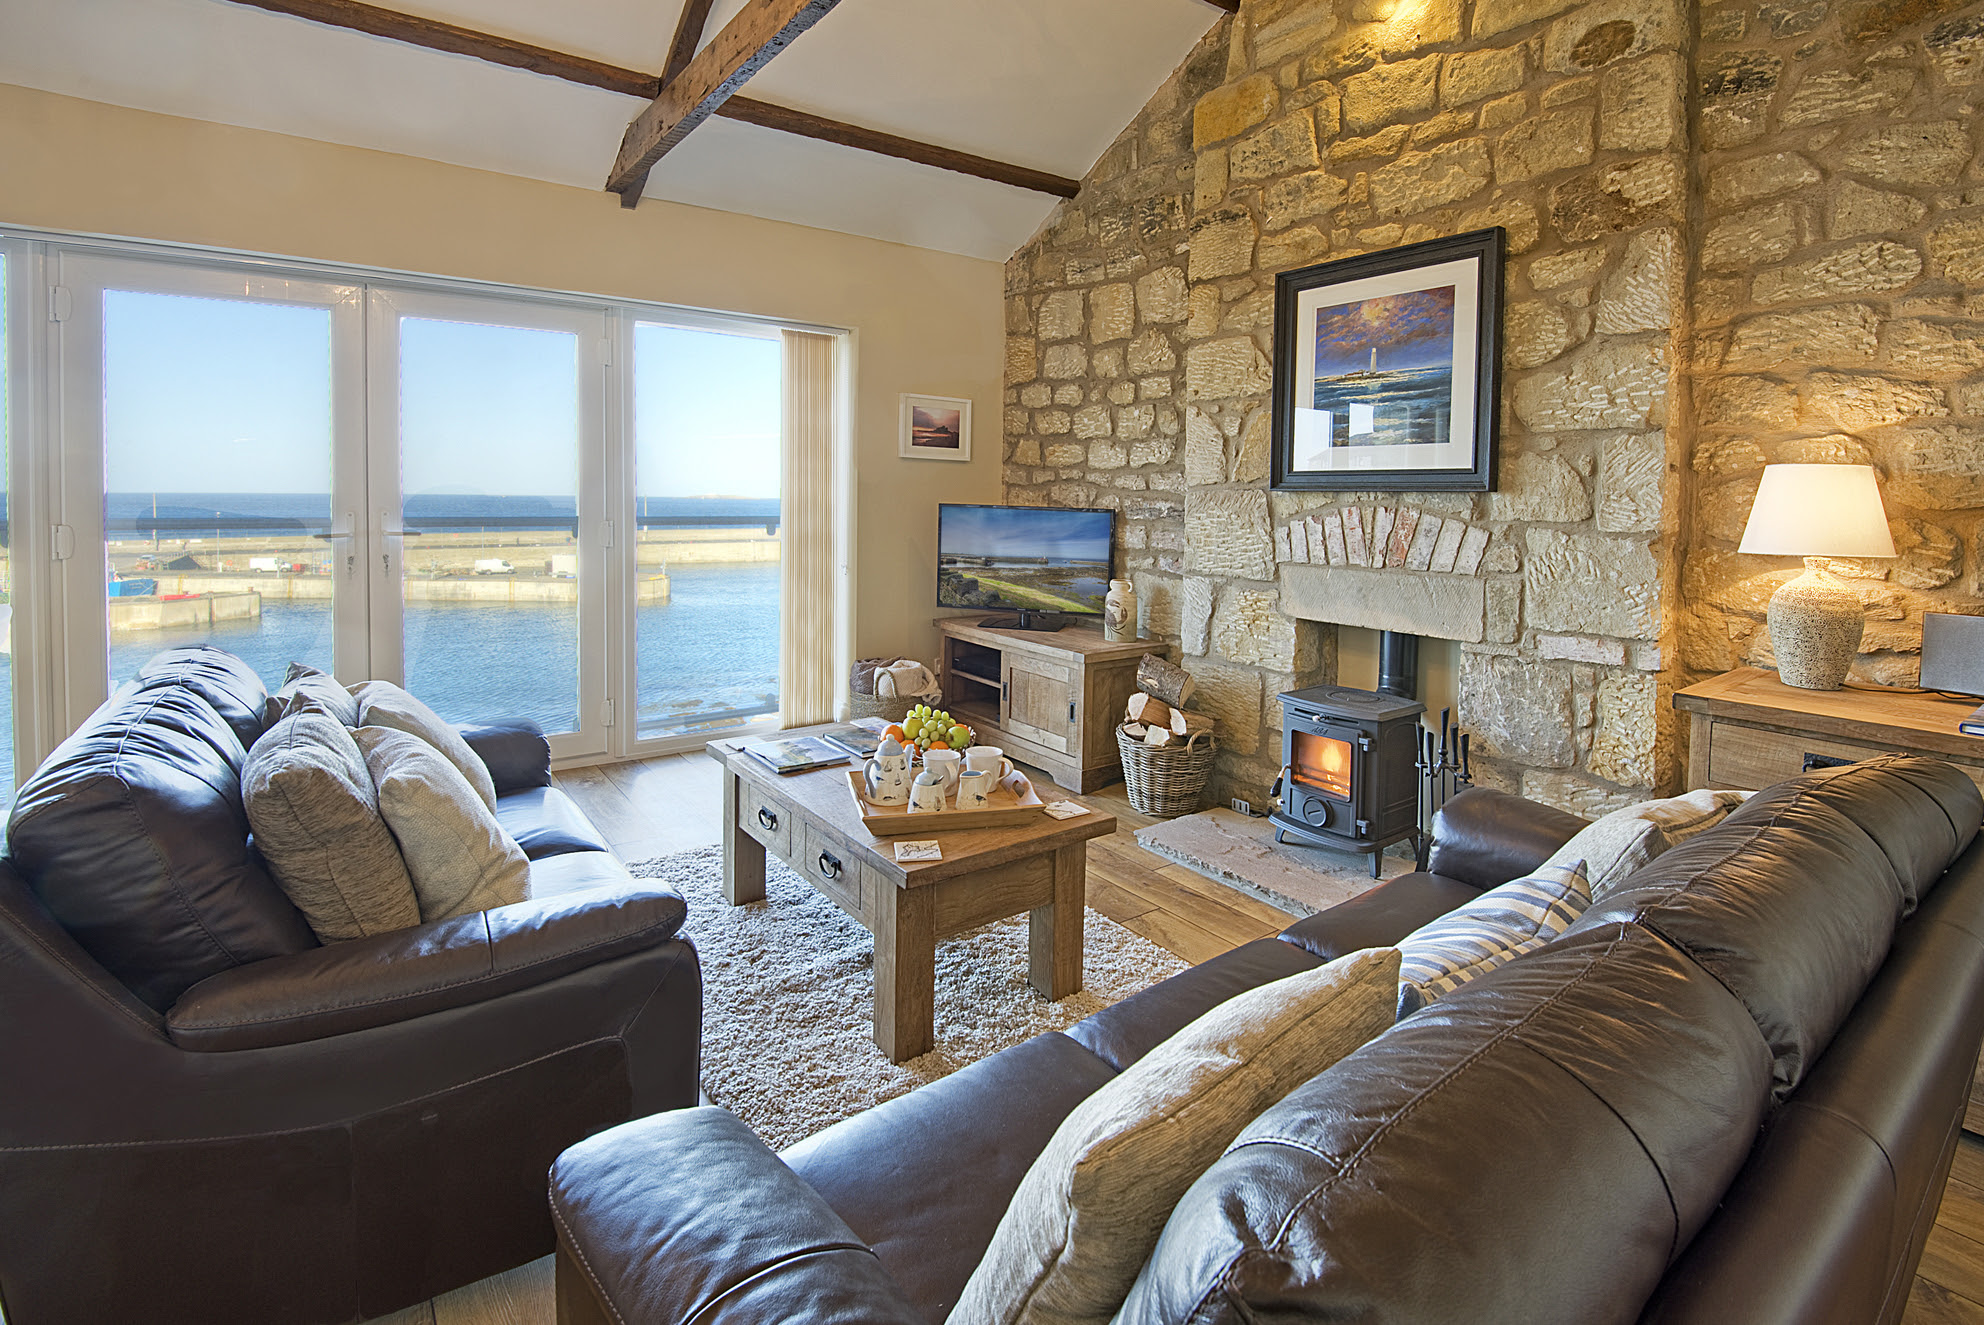 30 cosy UK holiday cottages perfect for winter breaks  AOL Travel UK